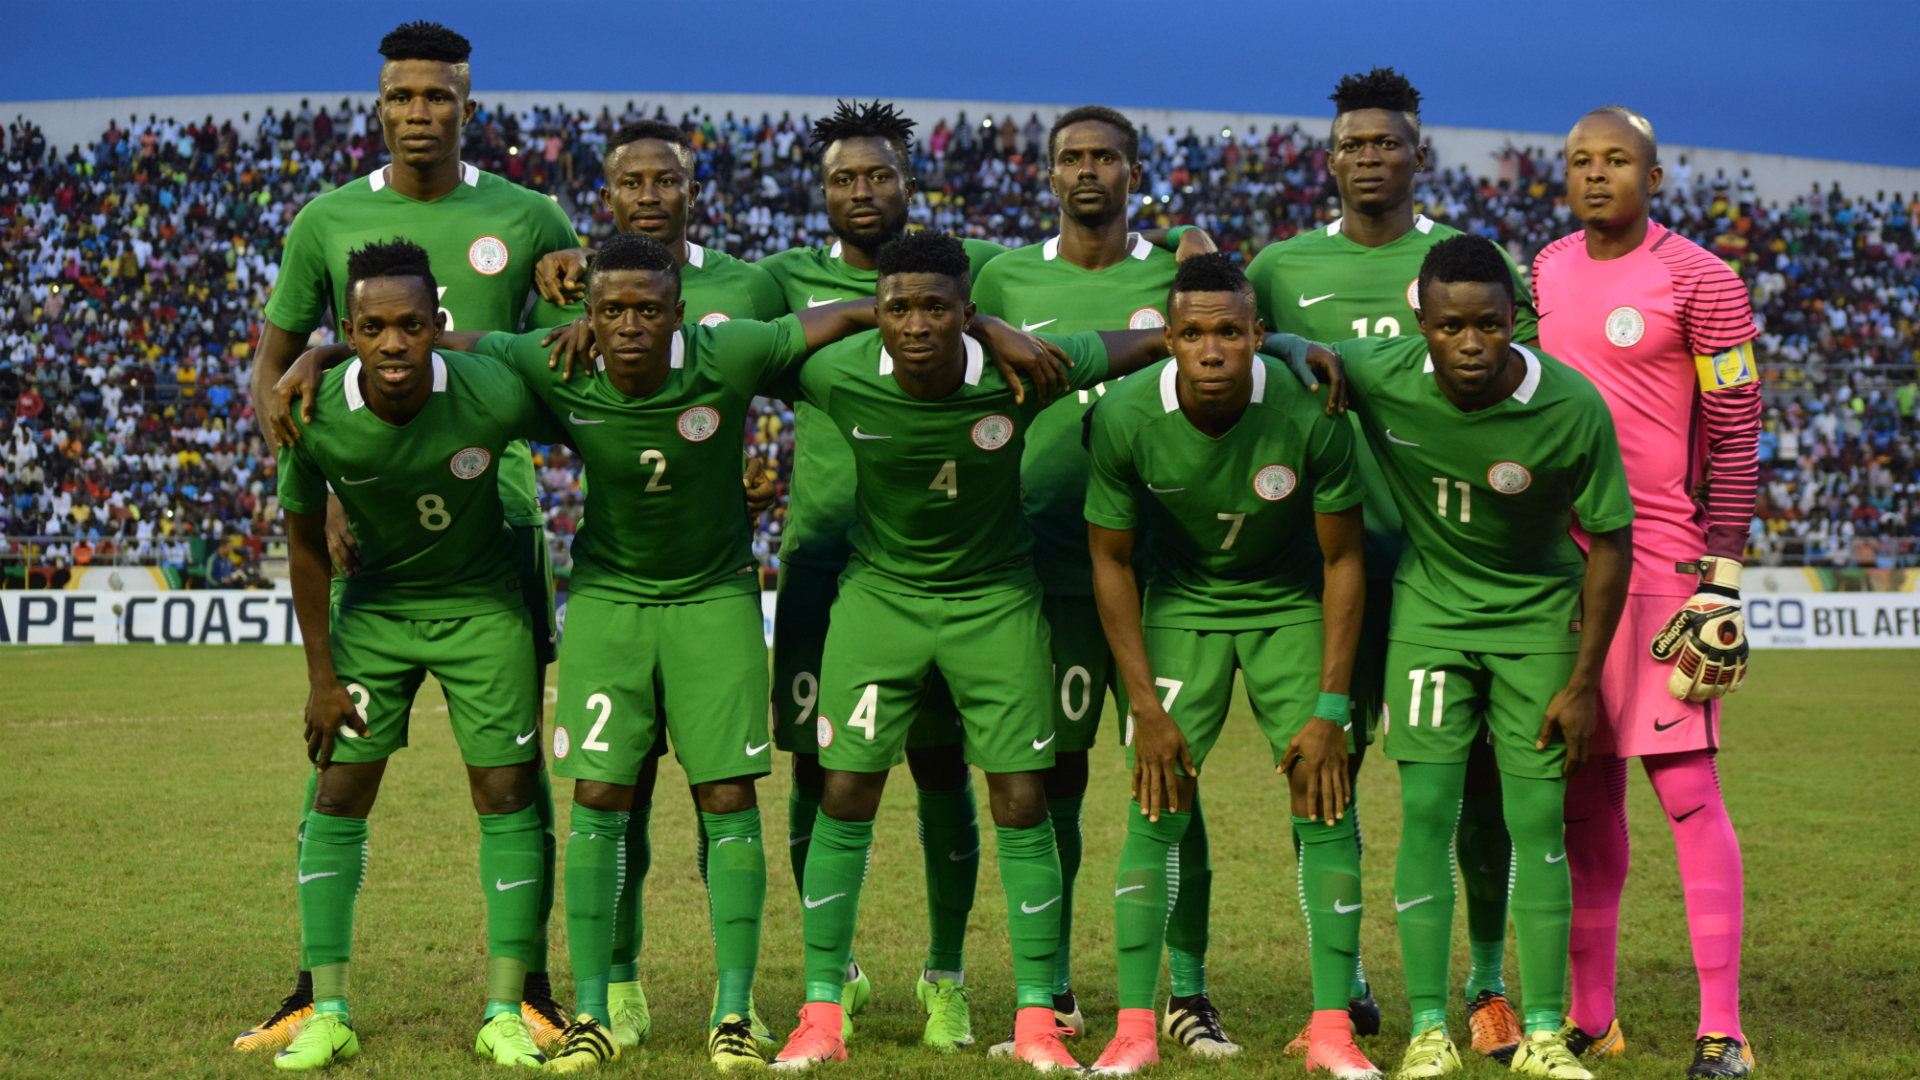 CHAN 2018: Draw Not Setback For Nigeria -Yusuf